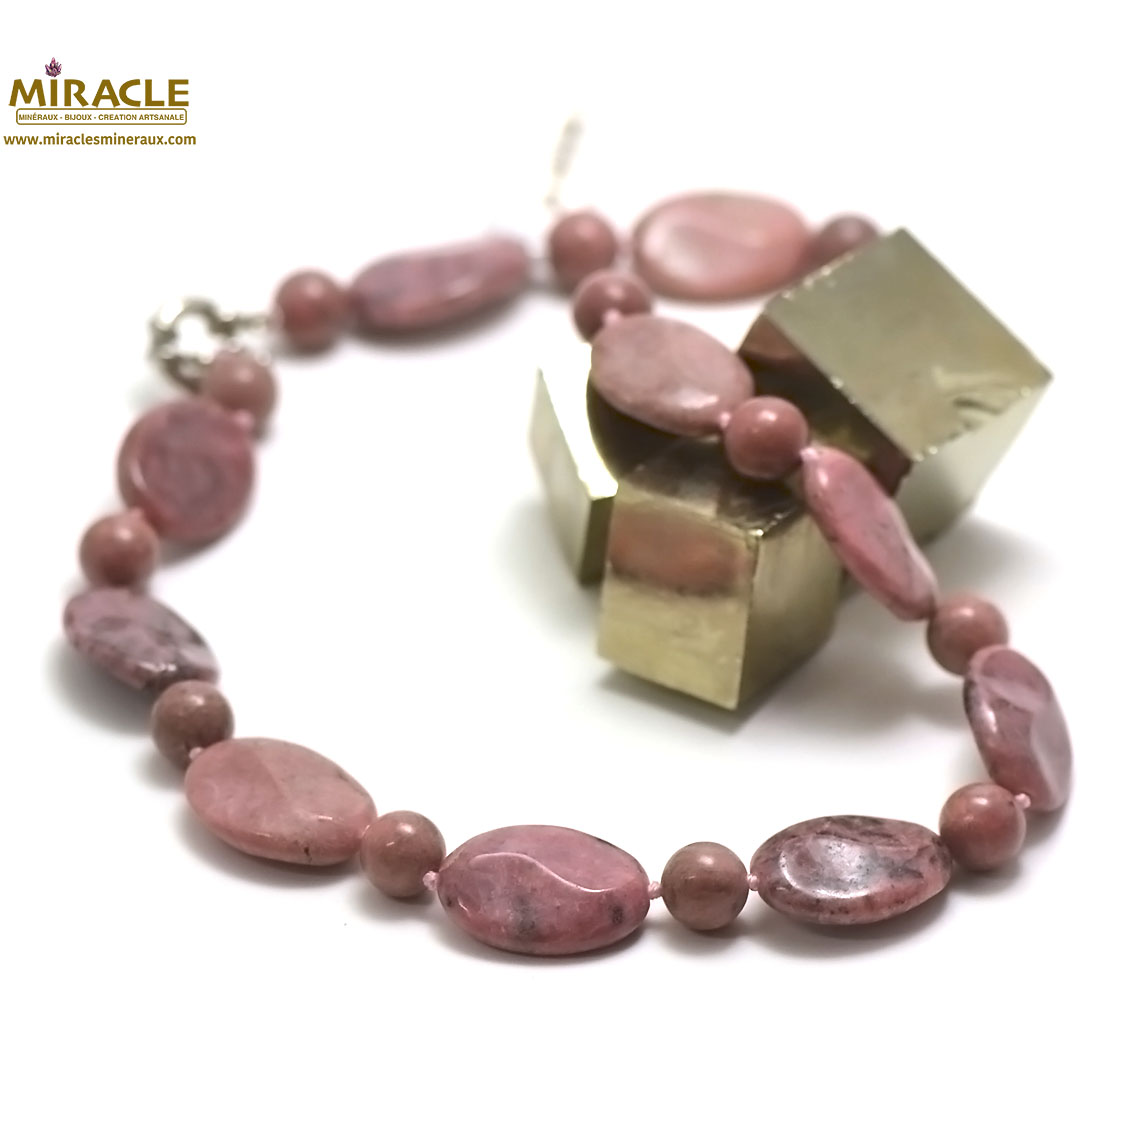 collier rhodonite, perlepalet oval/ronde 10 mm